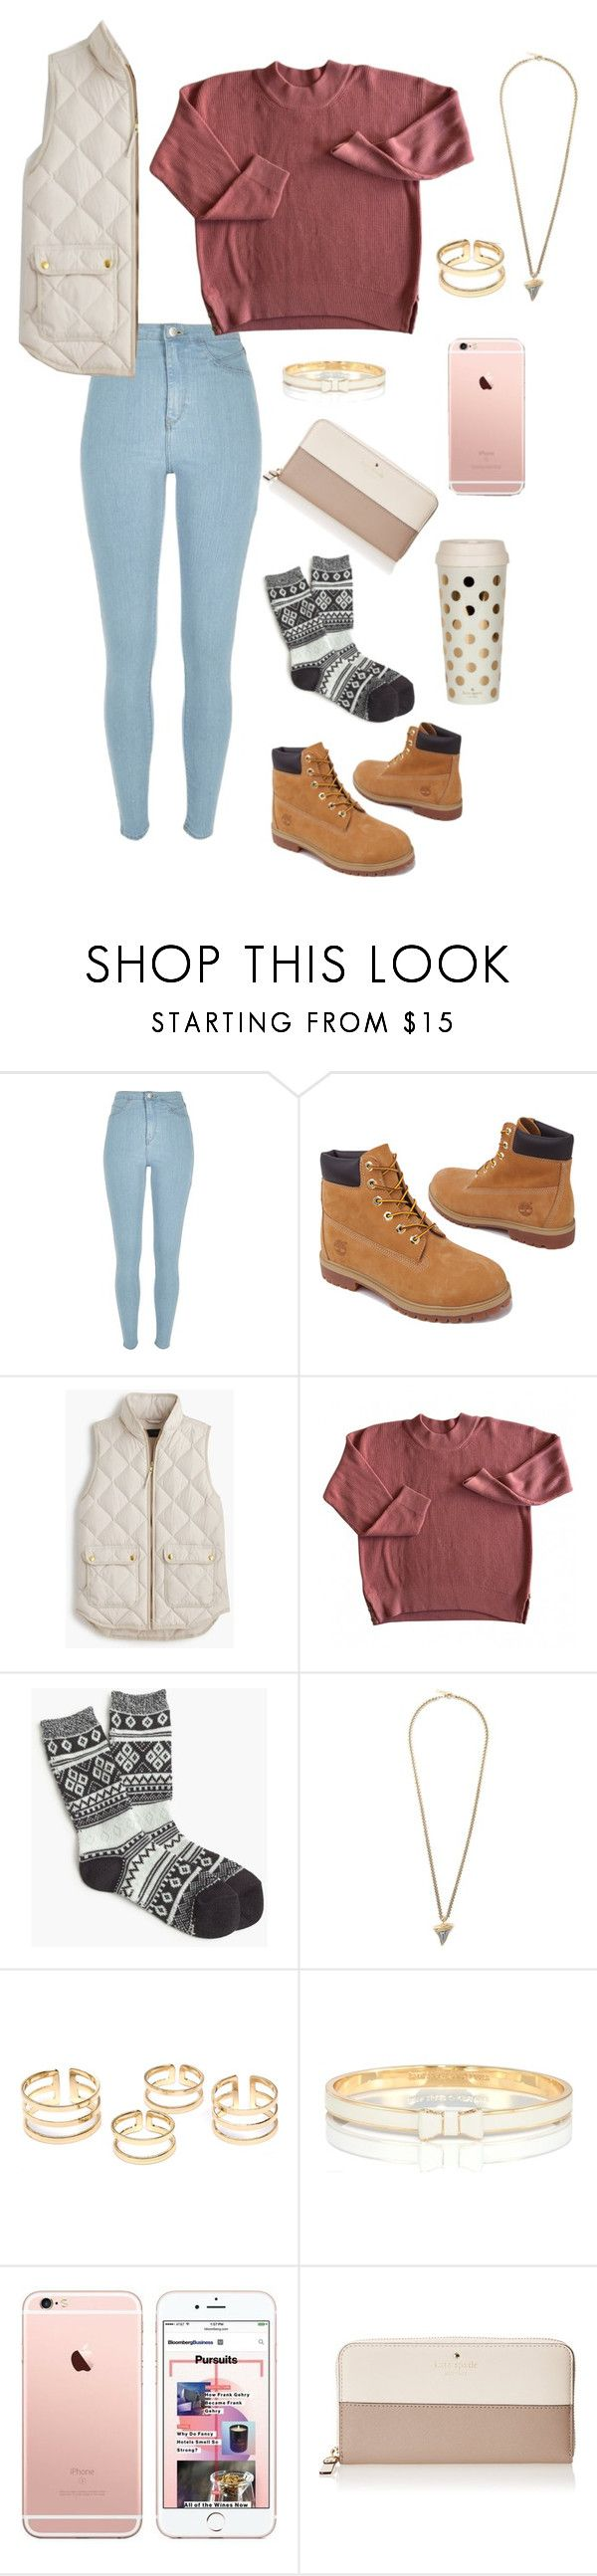 """Untitled #14"" by mgmagruder ❤ liked on Polyvore featuring River Island, Timberland, J.Crew, Givenchy, Kate Spade, women's clothing, women's fashion, women, female and woman"